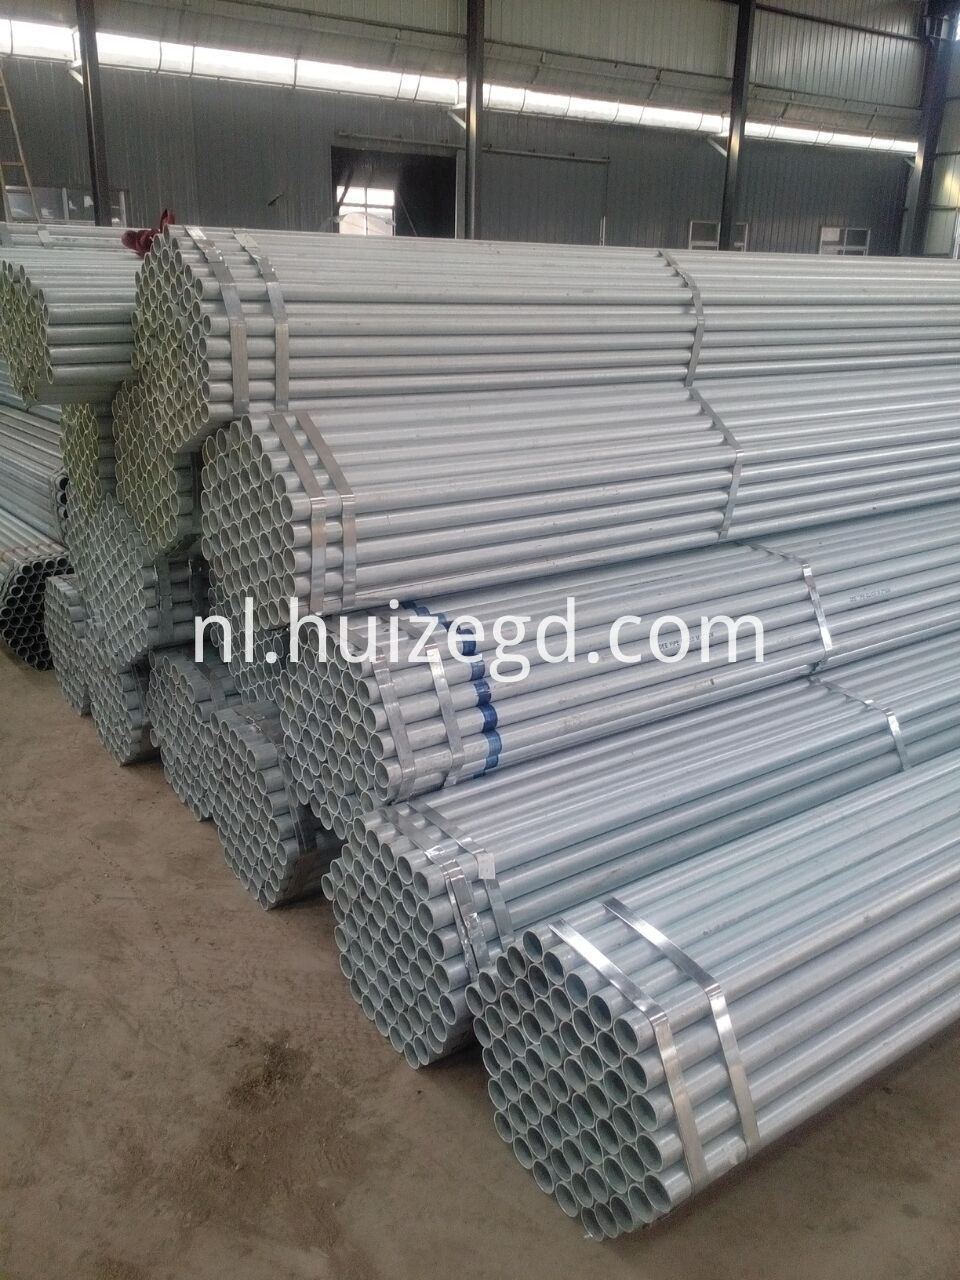 304 Grade Stainless Steel Pipes